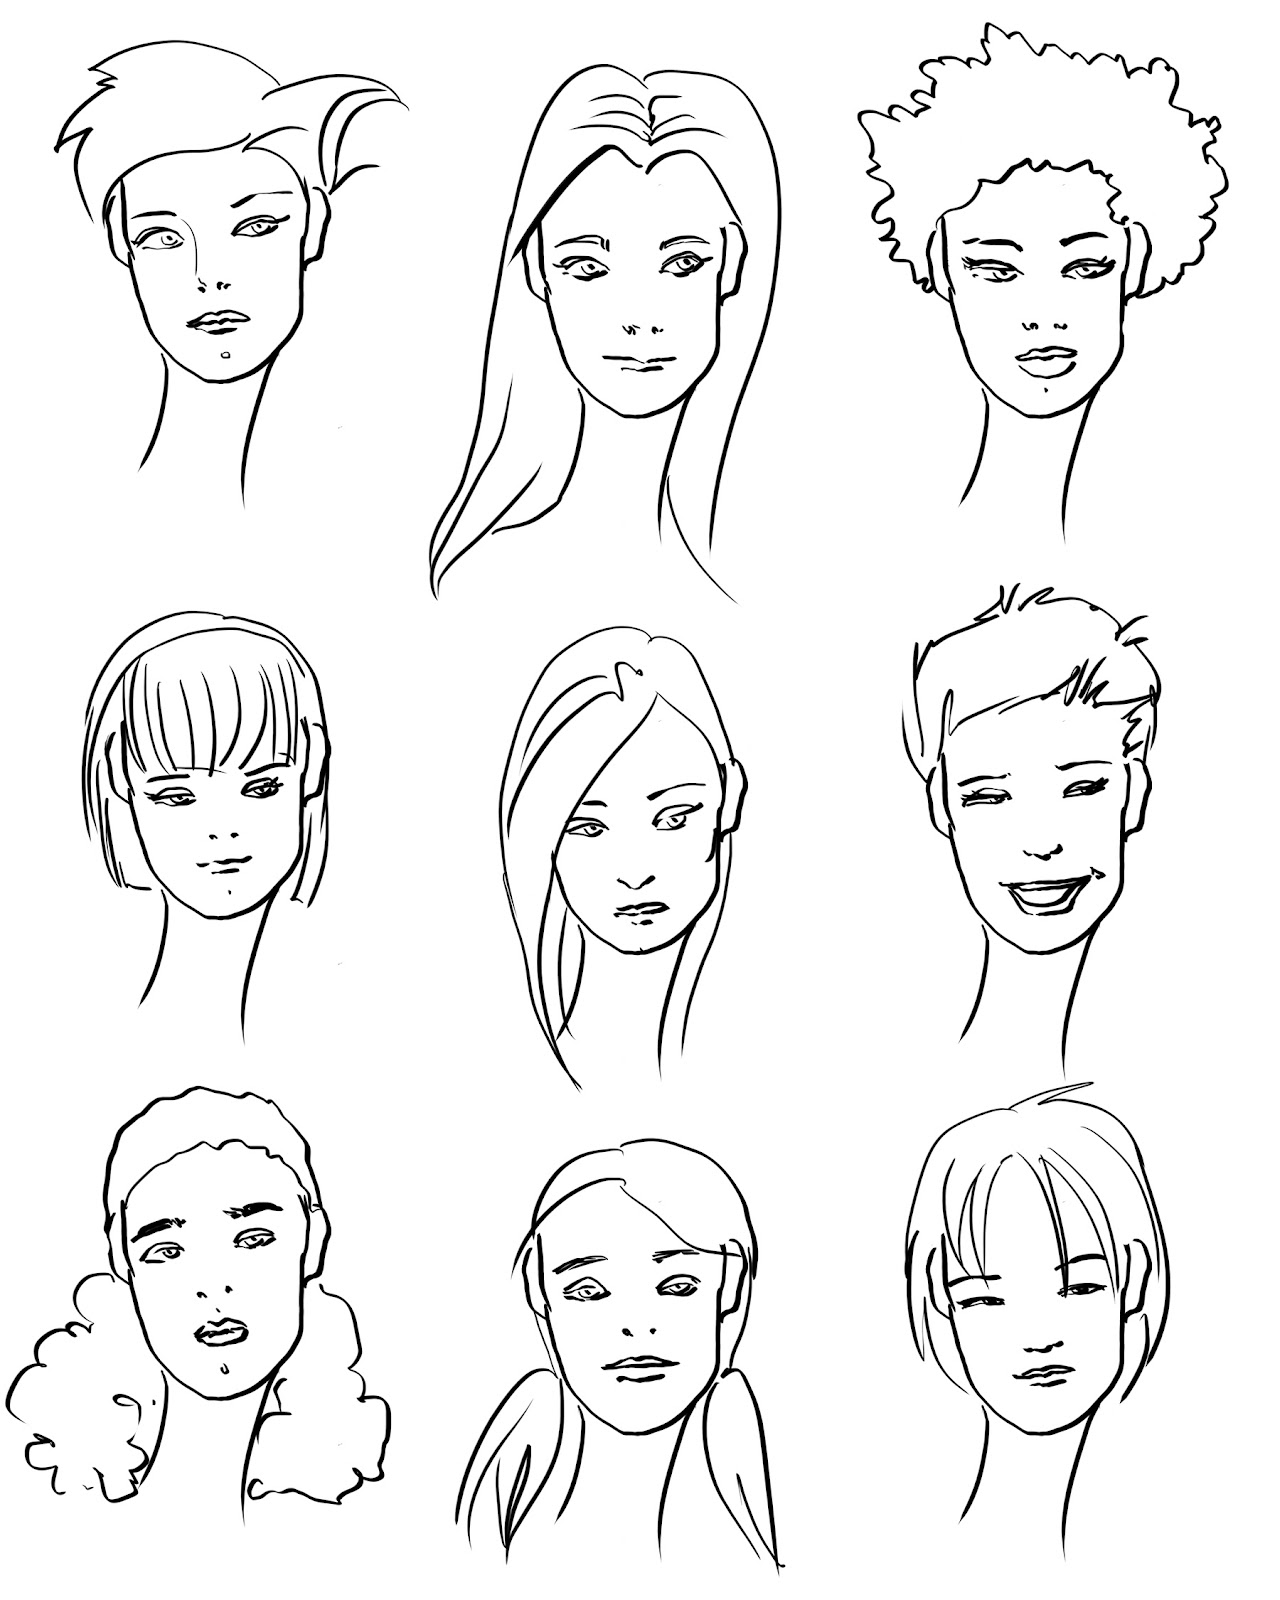 Drawn hair fashion drawing #15